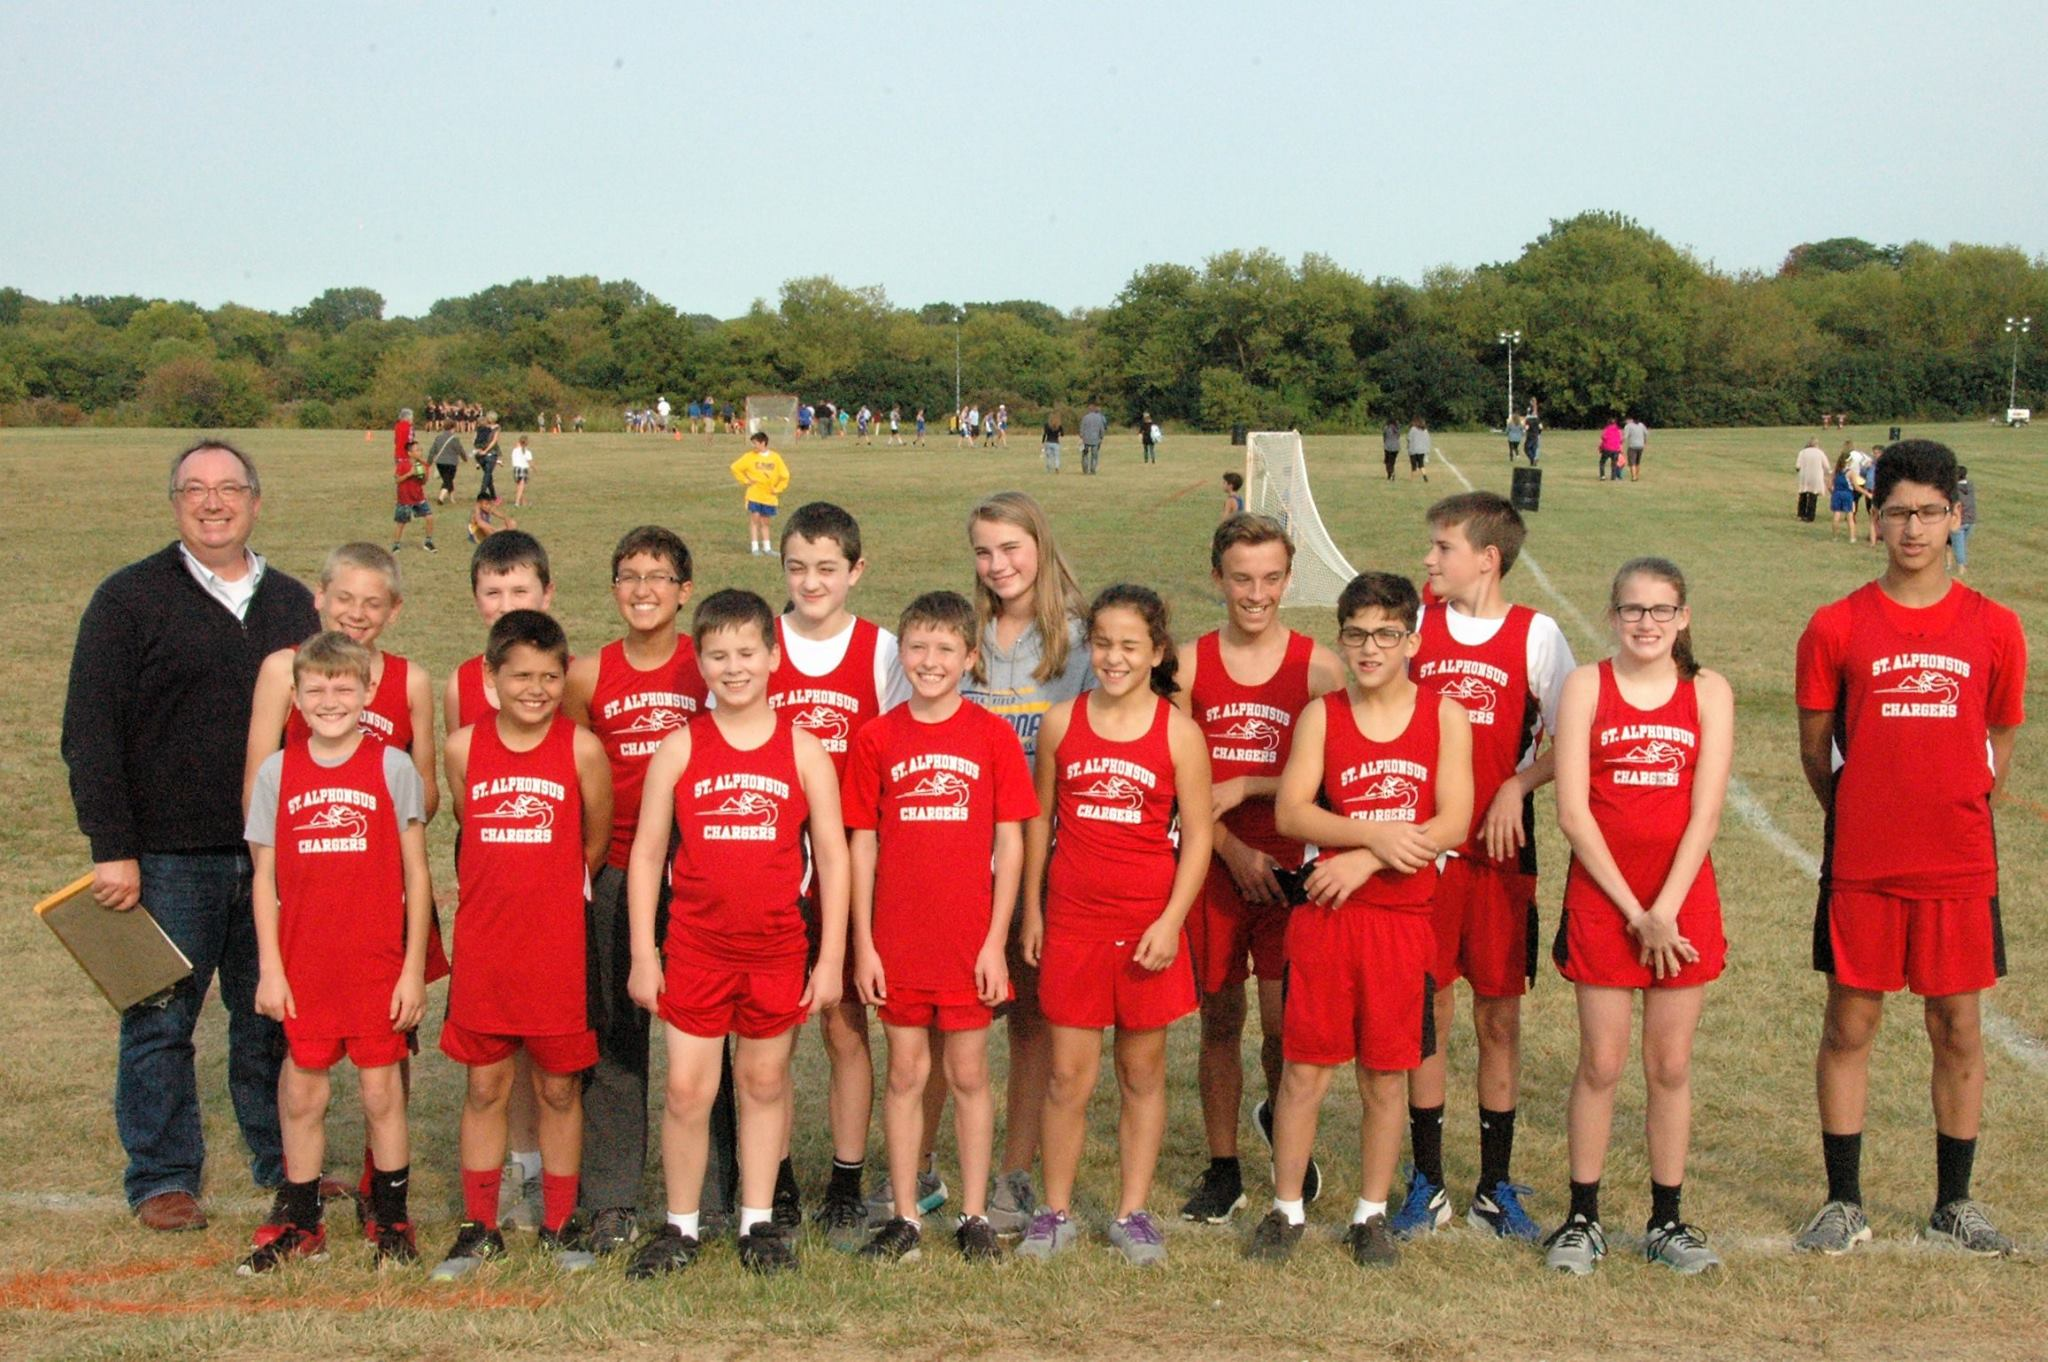 ST. AL'S - CROSS COUNTRY